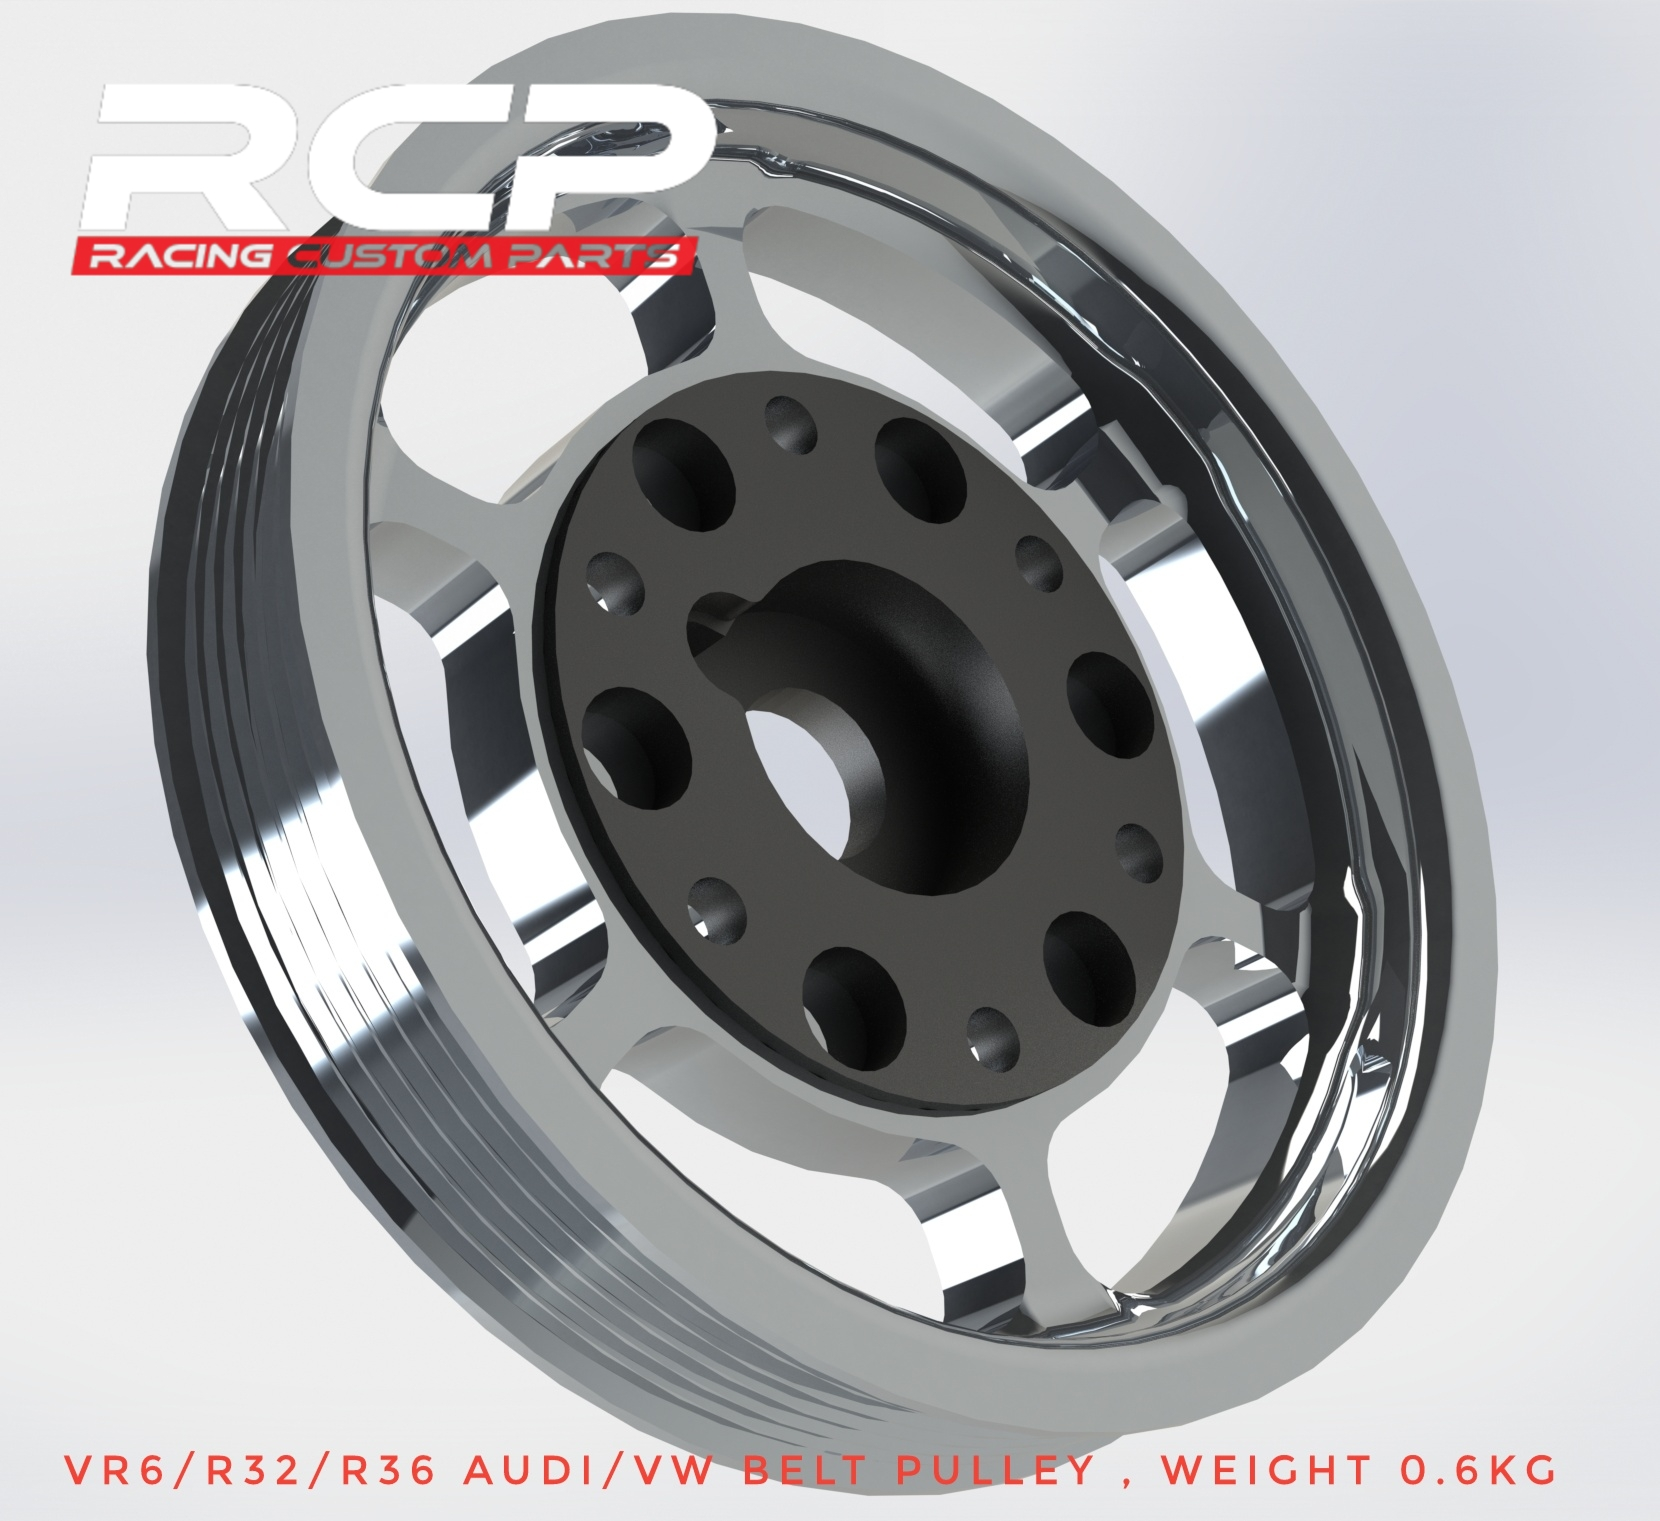 r32 r36 vr6 light belt pulley billet cnc racing custom parts audi trubo vw turbo